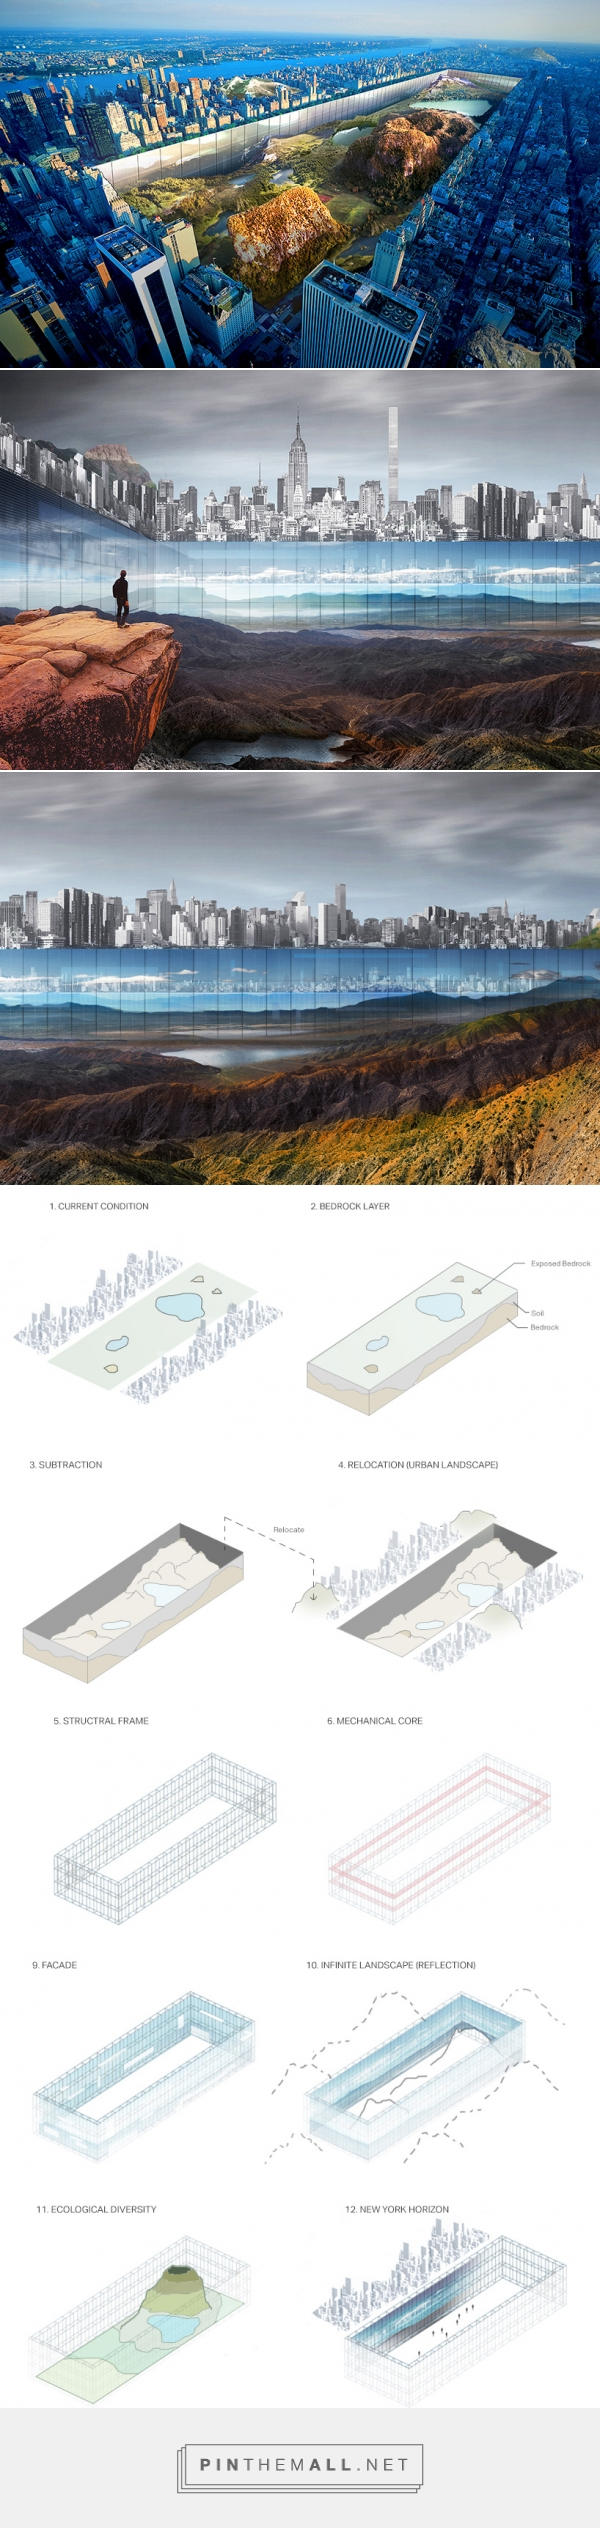 Proposal To Build 1 000 Foot Walls Around Excavated Central Park Http Www Designboom Com Architecture Central Park 1000 Foot Glass Walls Ne Grattacieli Idee